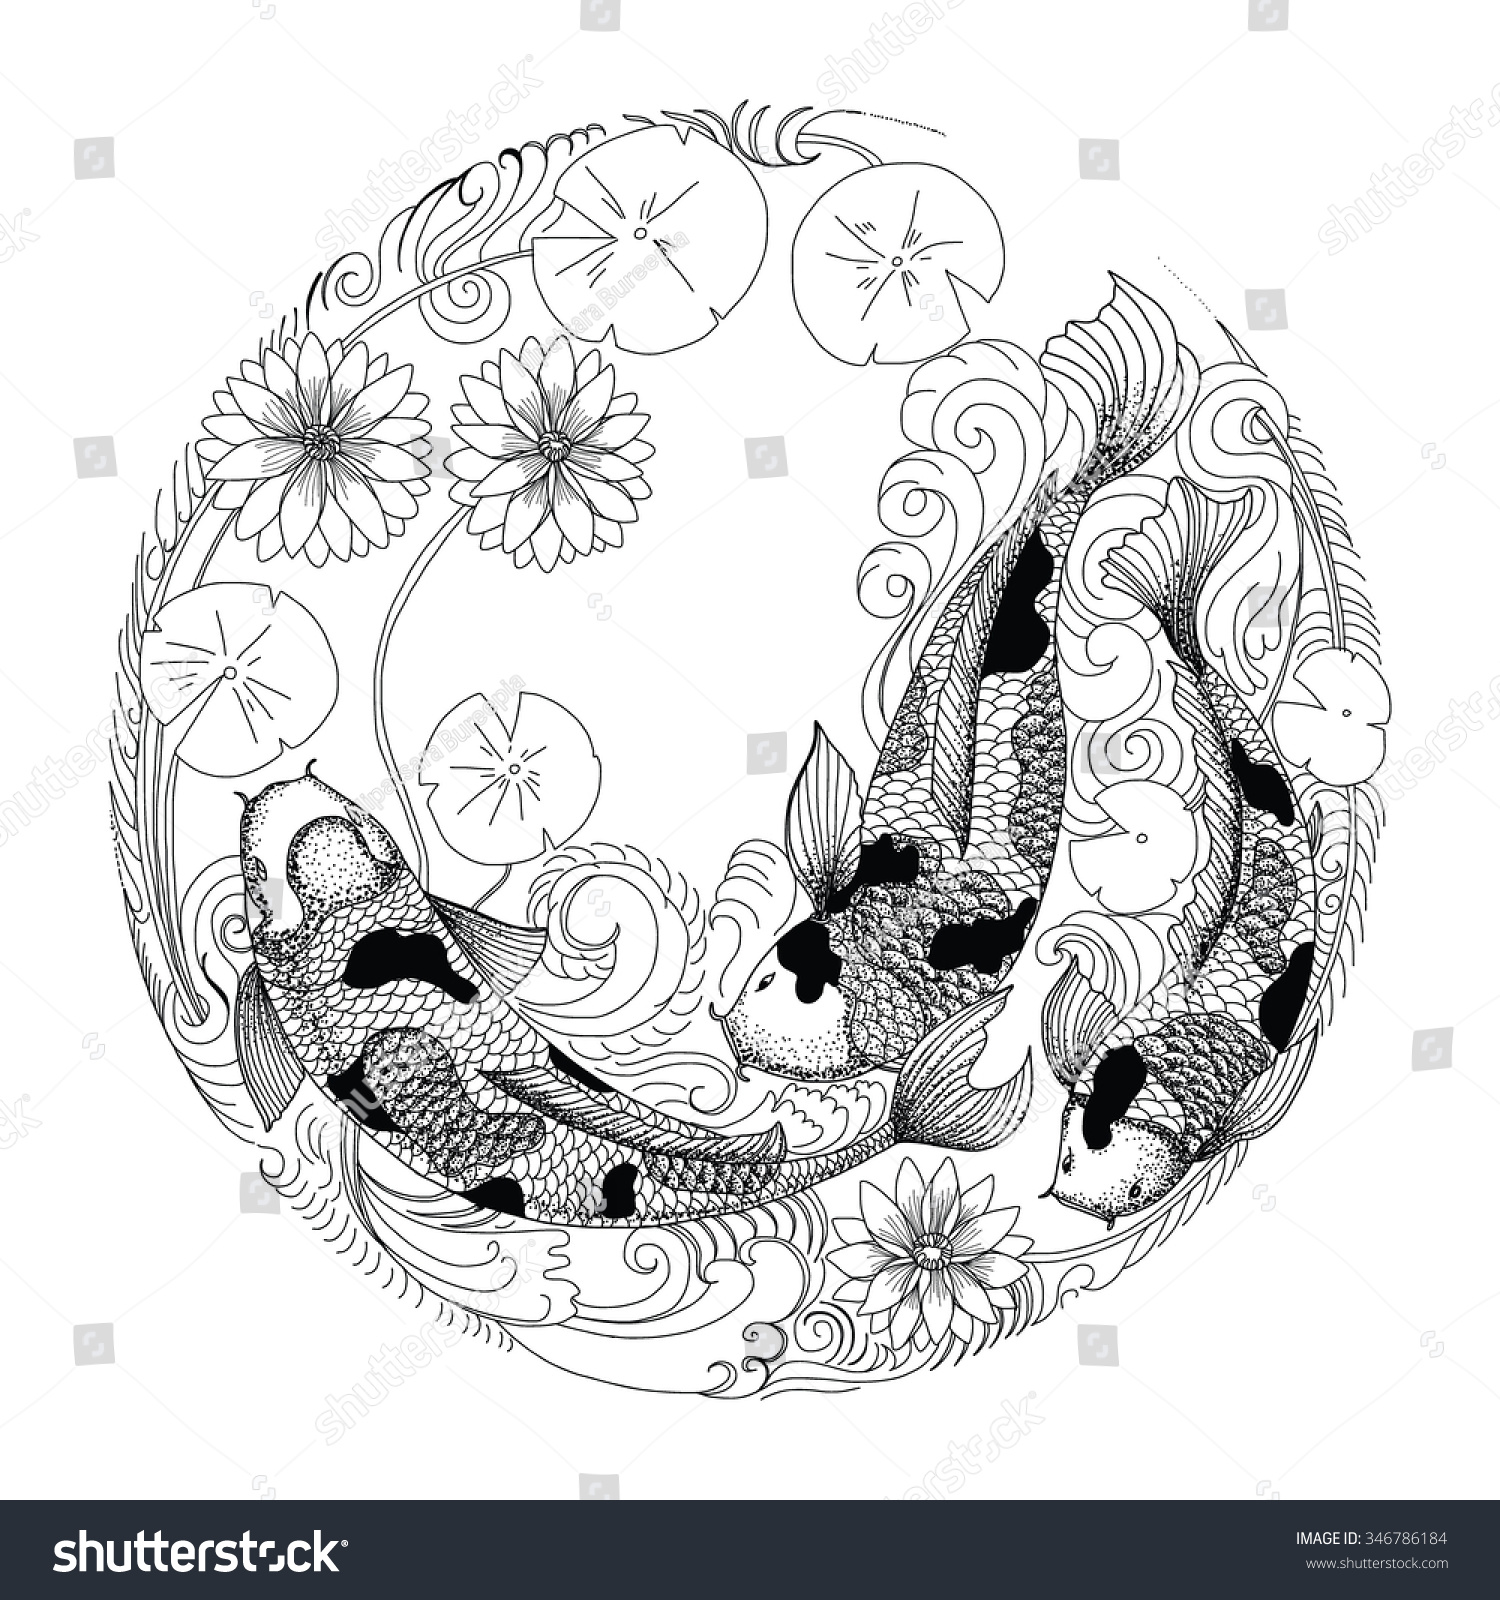 Hand Drawn Koi Fish In Circle Japanese Carp Line Drawing Coloring Book Vector Image